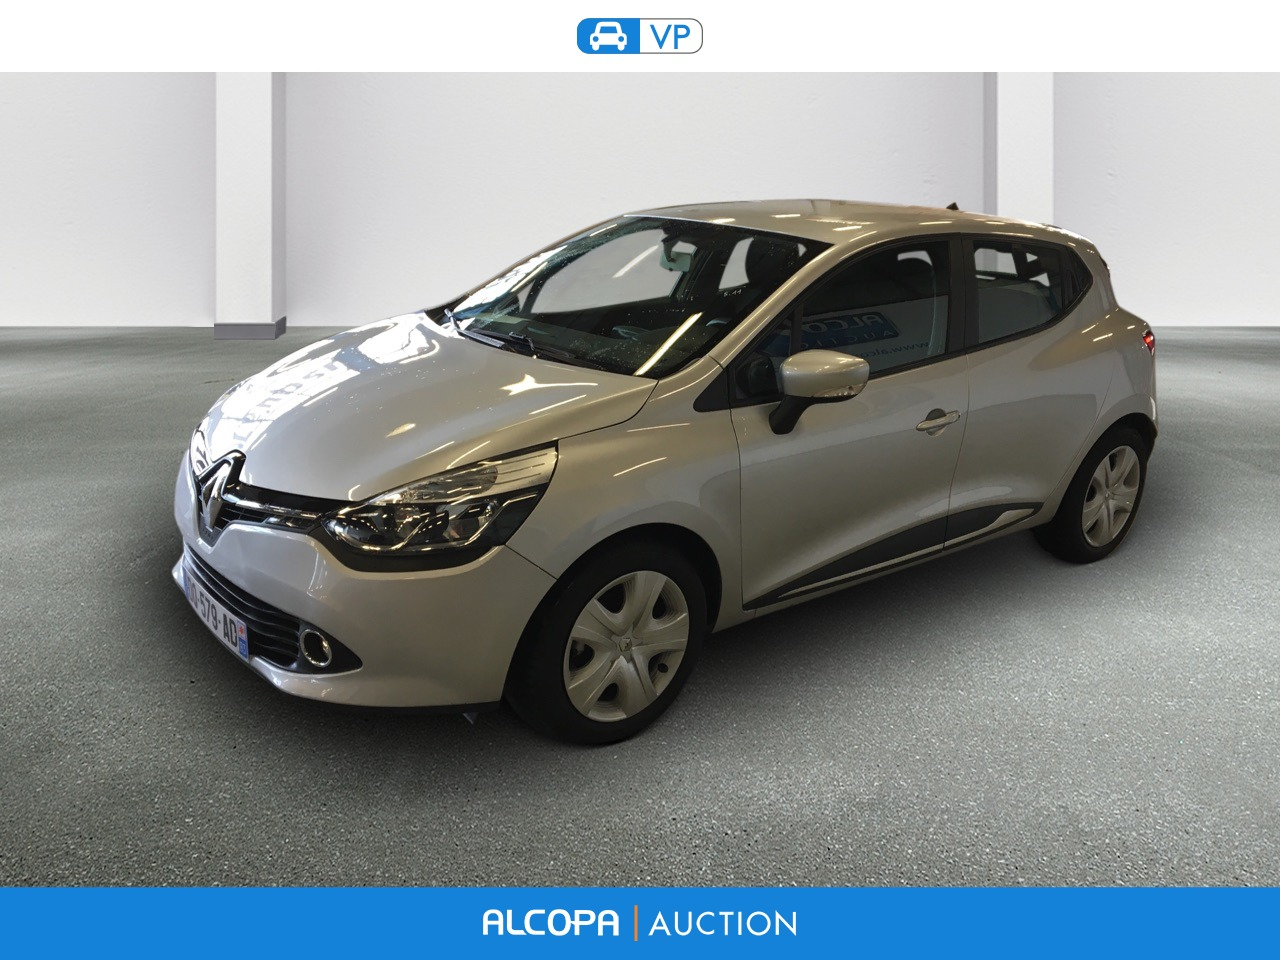 renault clio iv clio iv dci 75 eco2 zen 90g alcopa auction. Black Bedroom Furniture Sets. Home Design Ideas